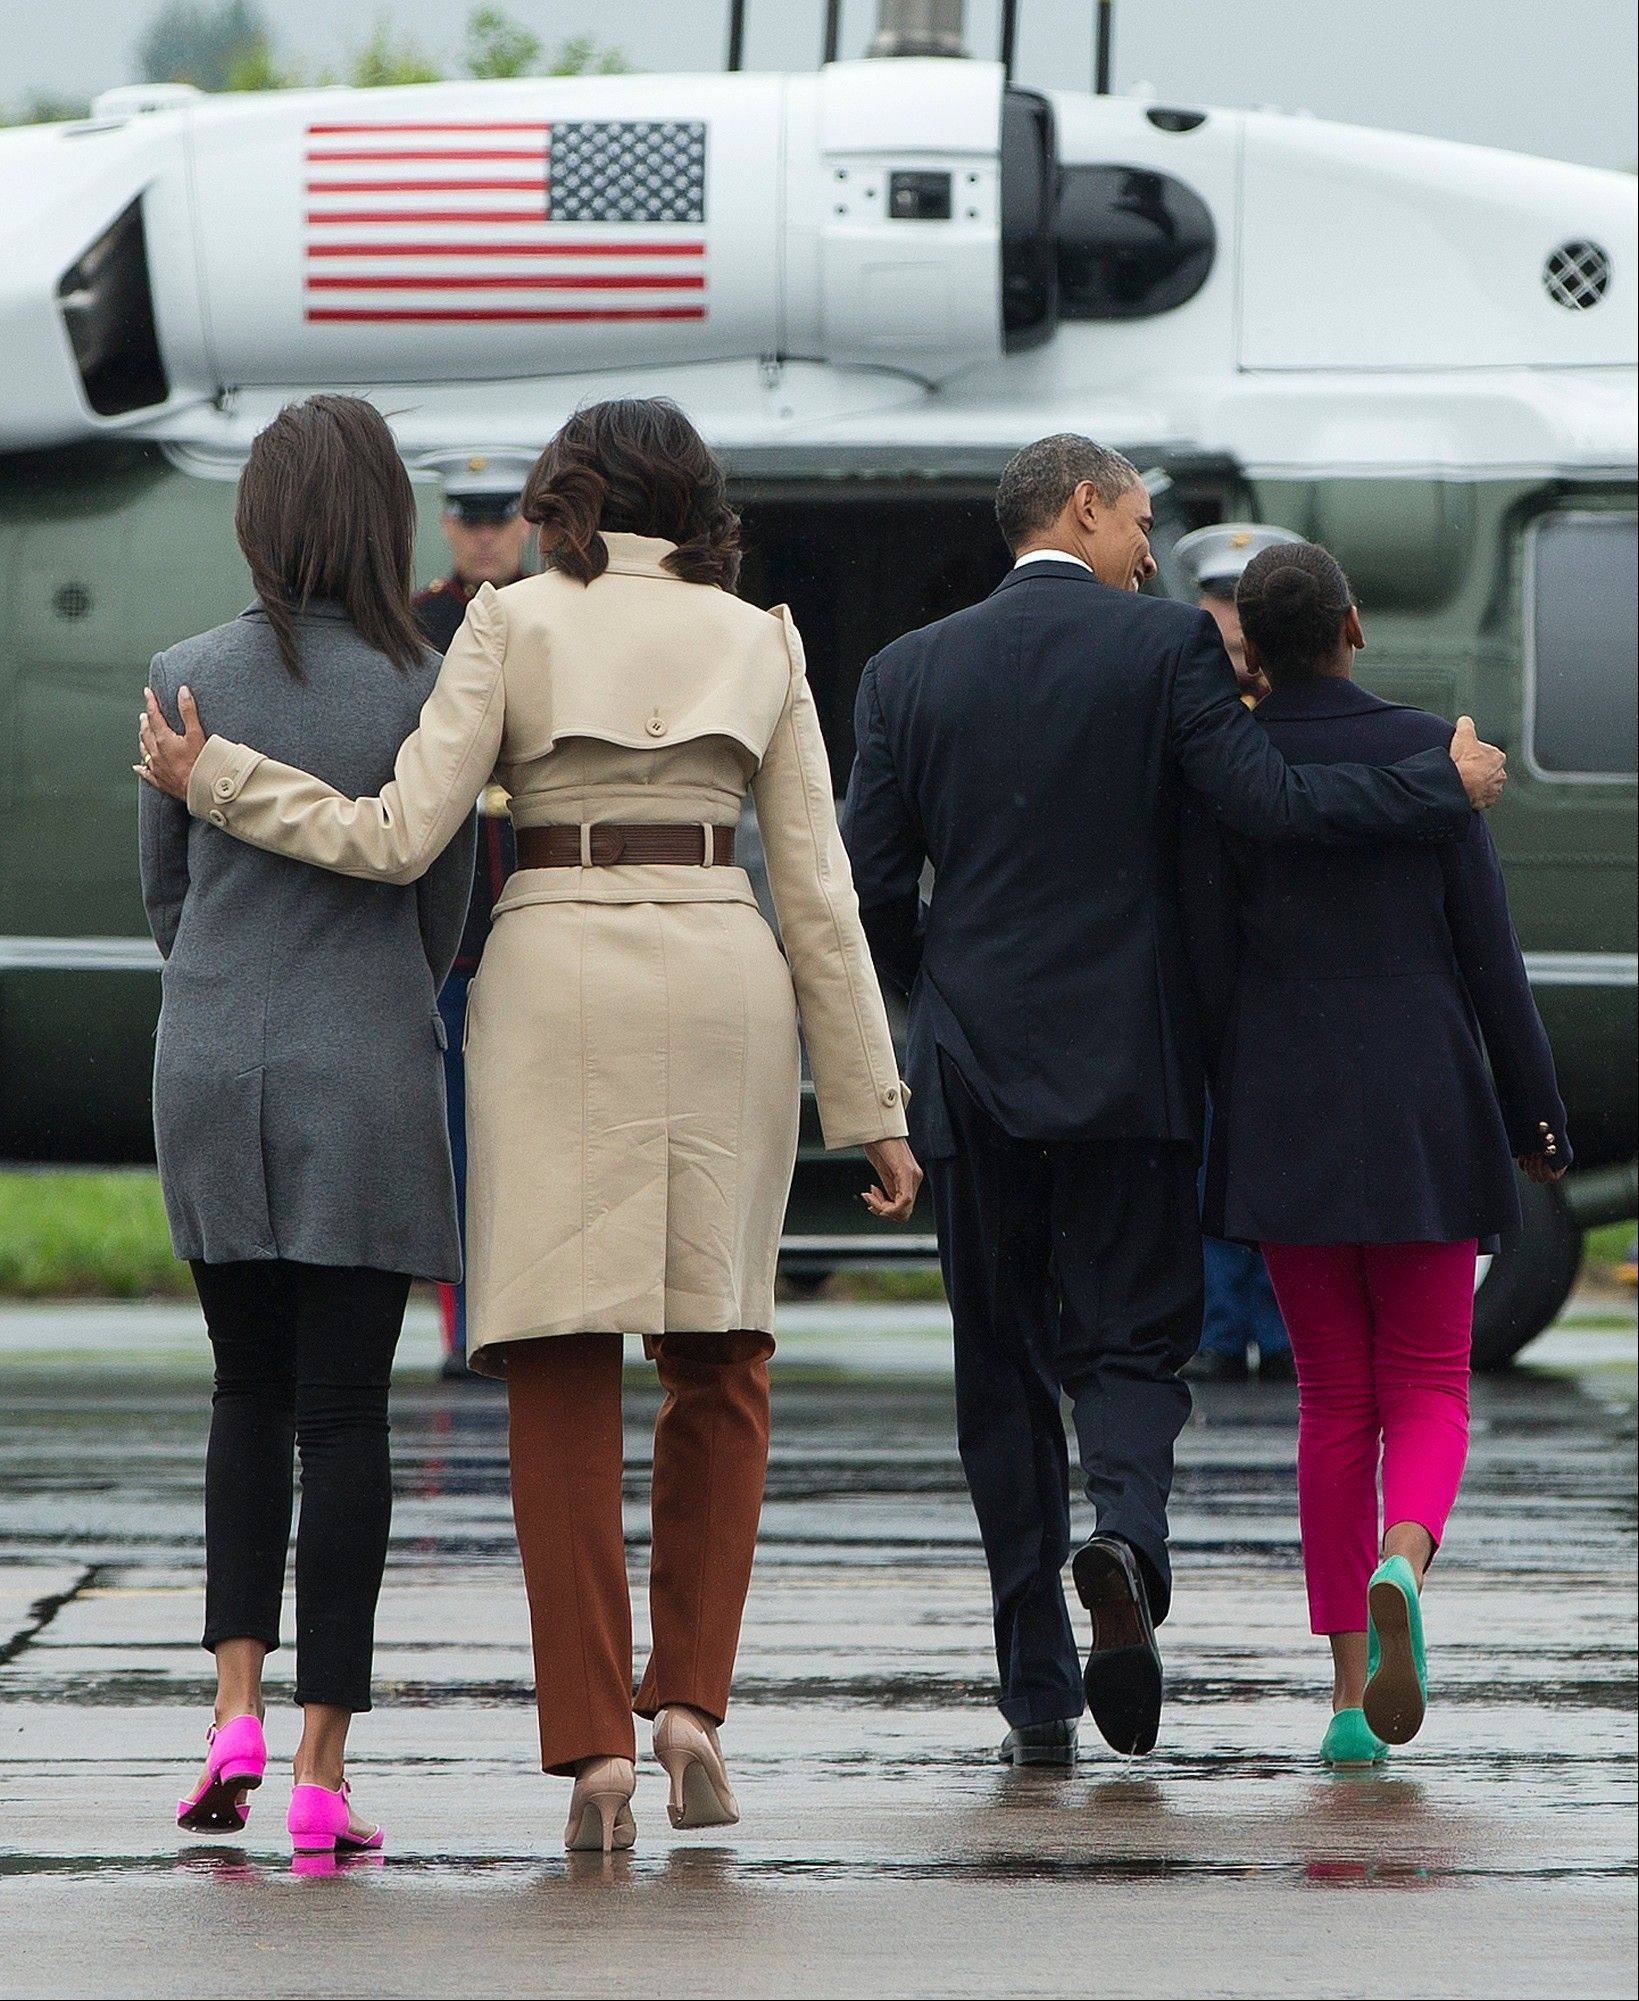 President Barack Obama, third from left, arrives in Belfast, Northern Ireland, with, from left, daughter Malia, first lady Michelle Obama, and daughter Sasha on Monday. Obama is attending the G-8 summit in Enniskillen, Northern Ireland.